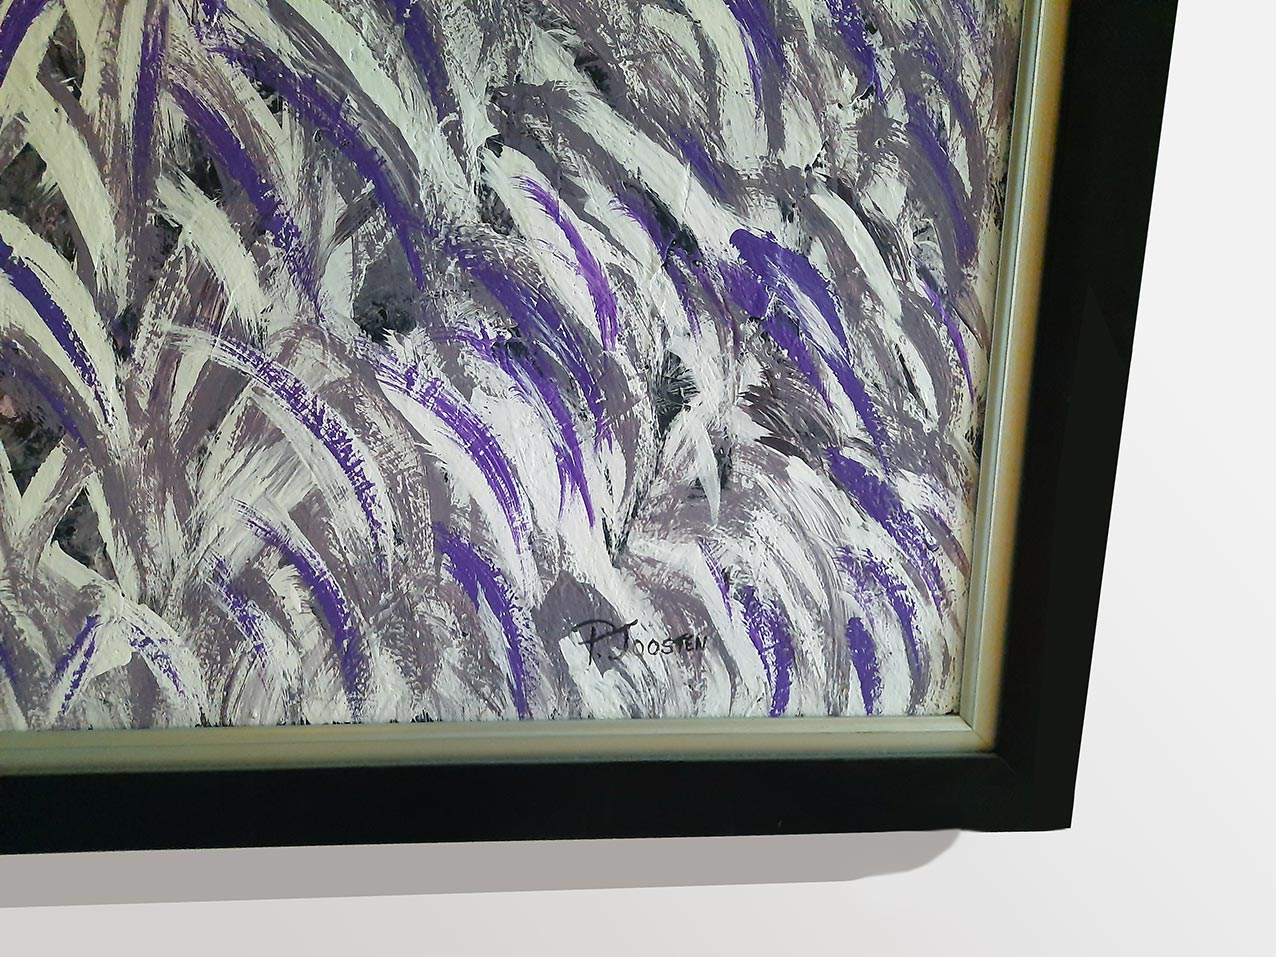 CATWALK-Iady-with-feathers-front-signature